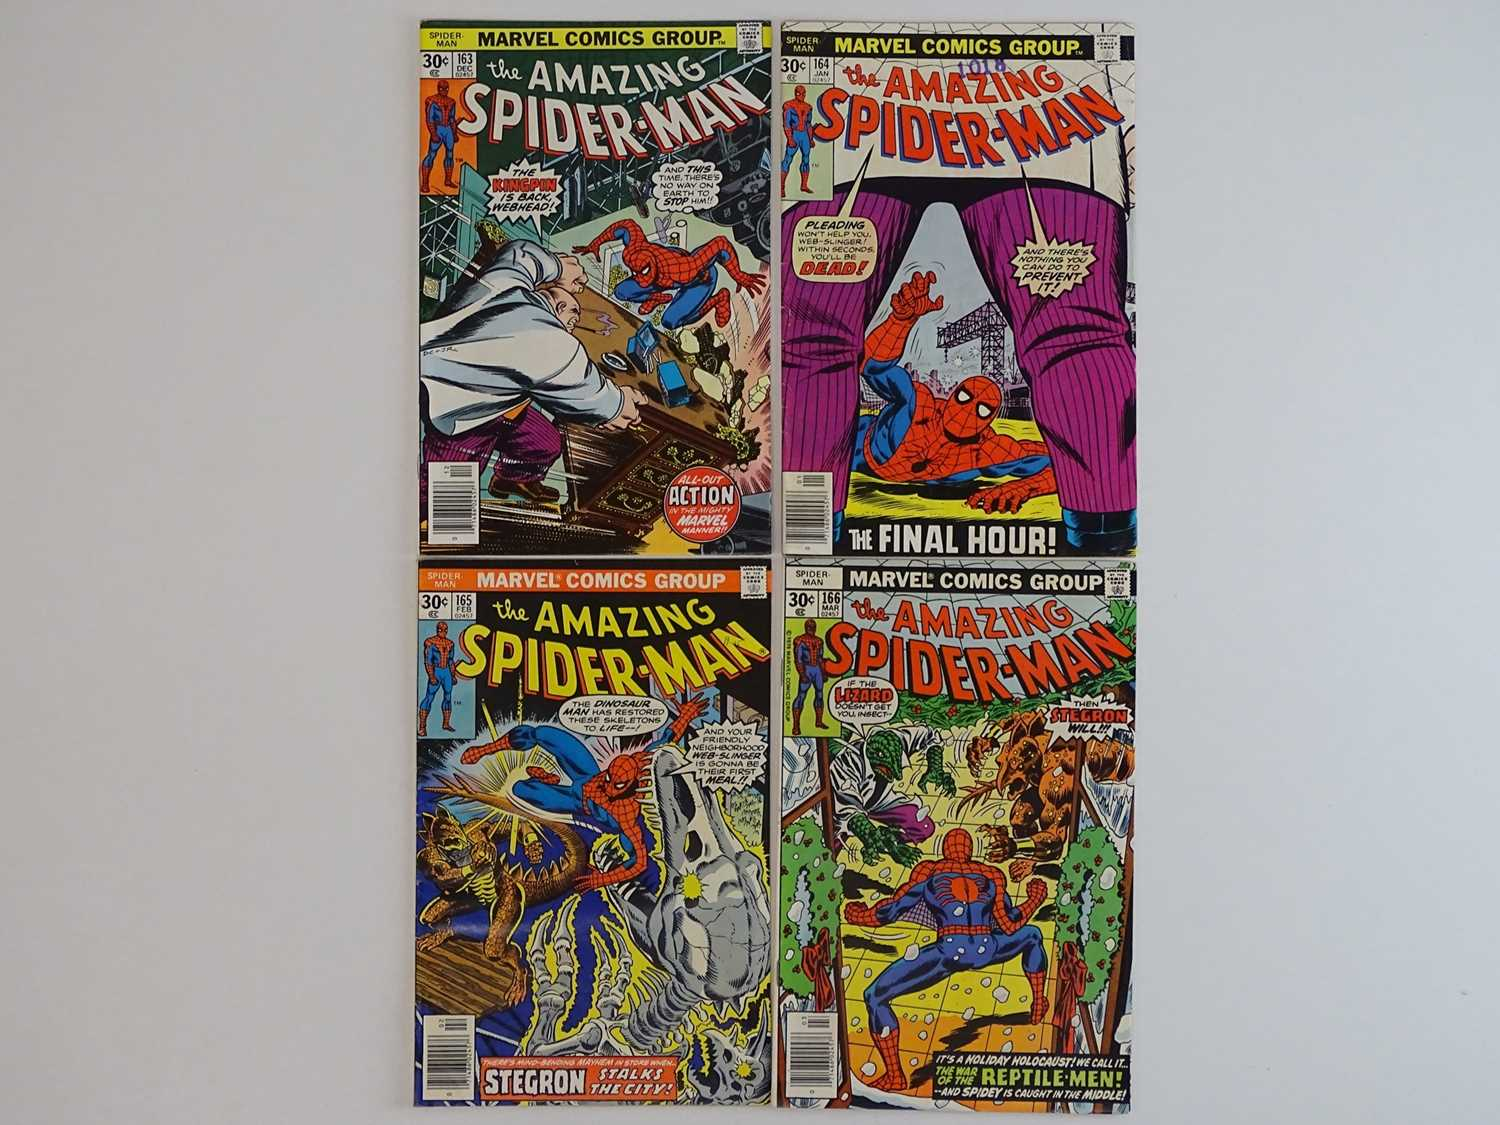 AMAZING SPIDER-MAN #163, 164, 165, 166 - (4 in Lot) - (1976/77 - MARVEL) - Includes Kingpin, Lizard,